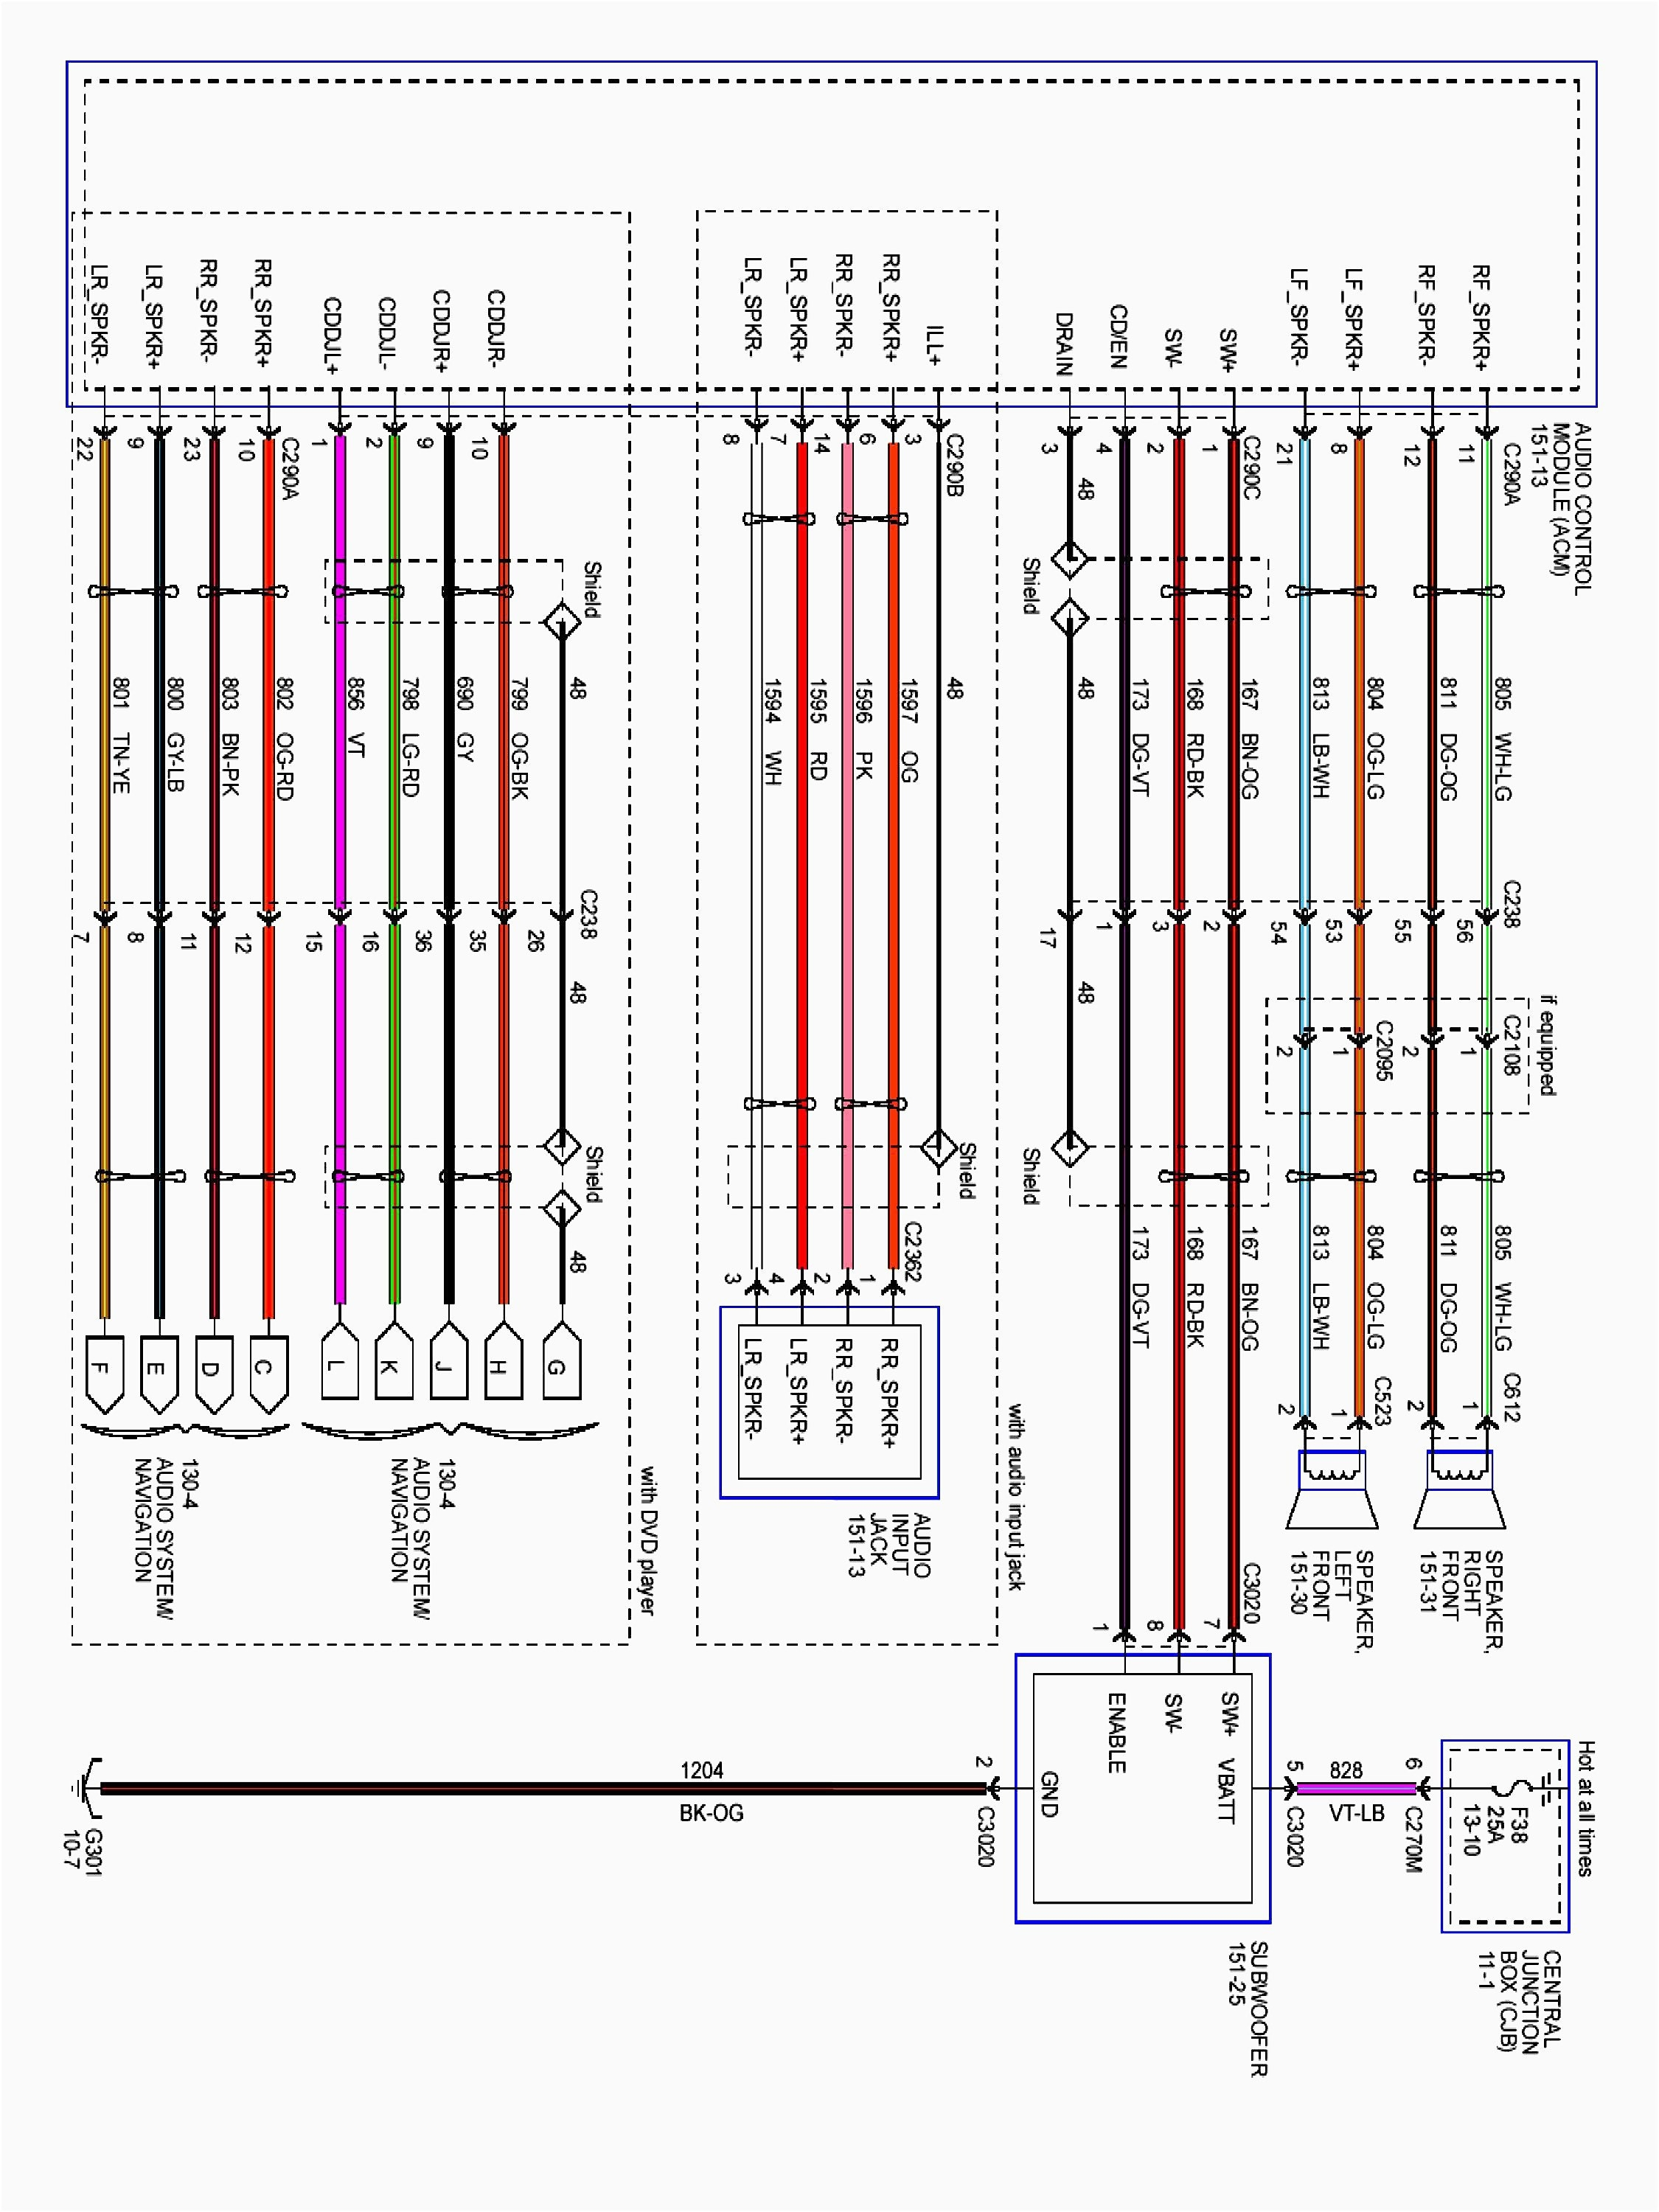 WRG-5568] Cd Player Wiring Diagram 2002 Caravan on